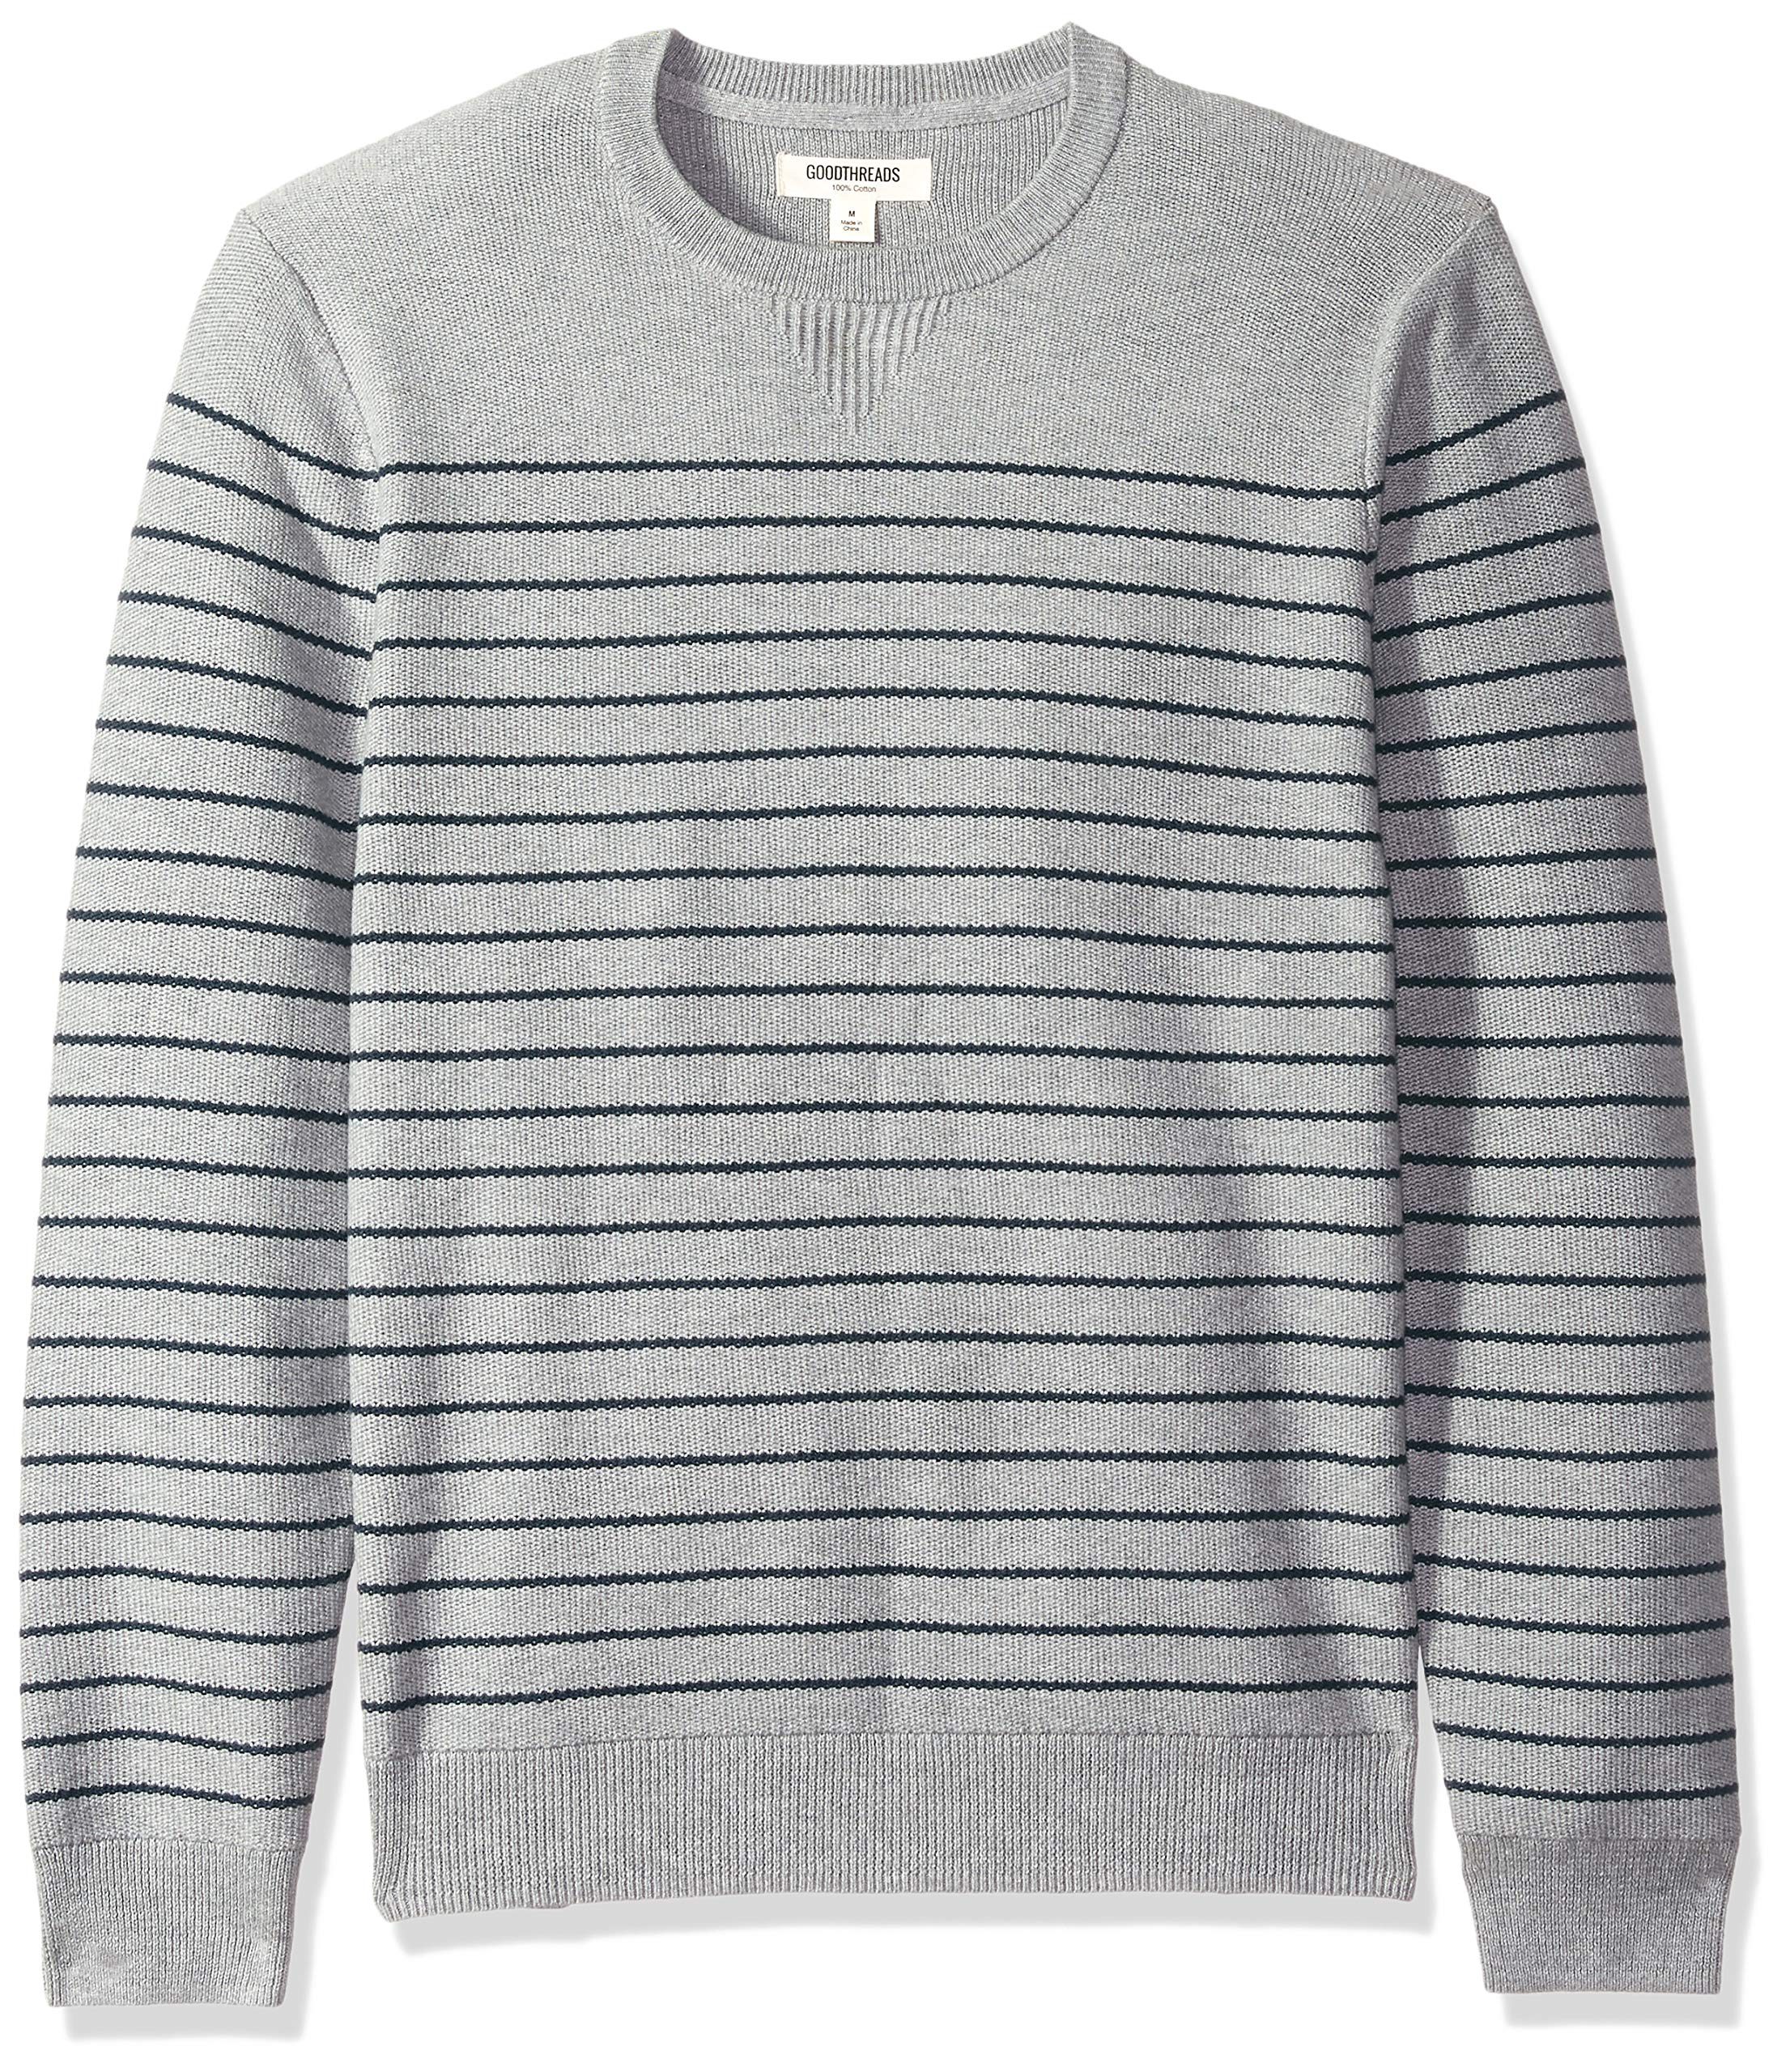 Goodthreads Men's Soft Cotton Striped Crewneck Sweater, Heather Grey/Navy, XXX-Large Tall by Goodthreads